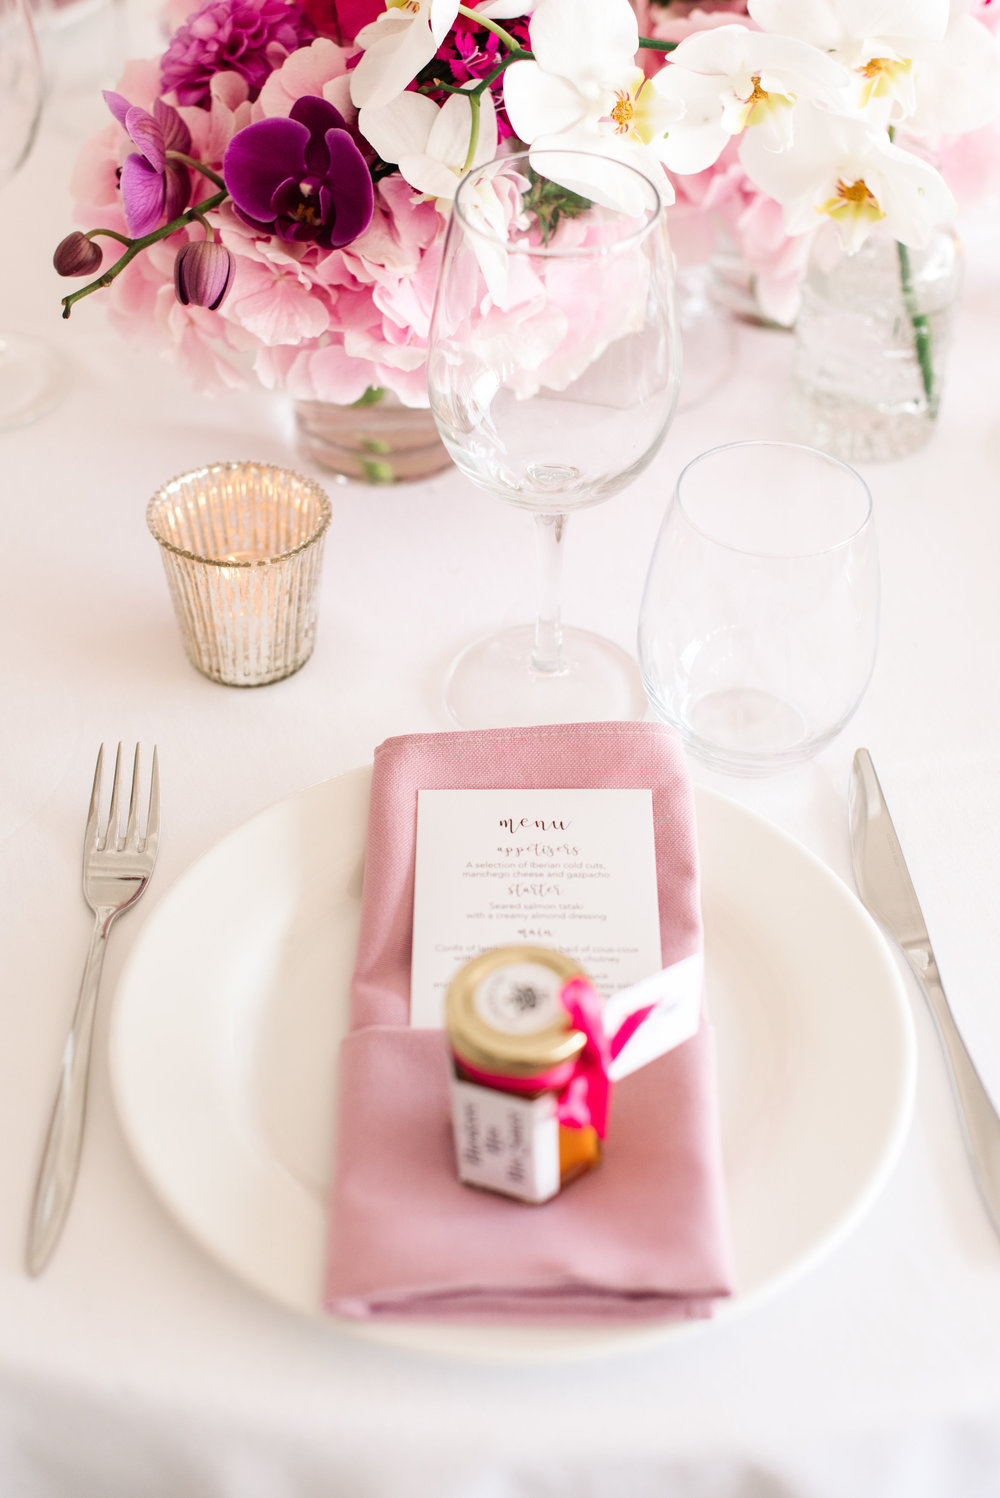 wedding table inspiration, wedding flowers, pinks